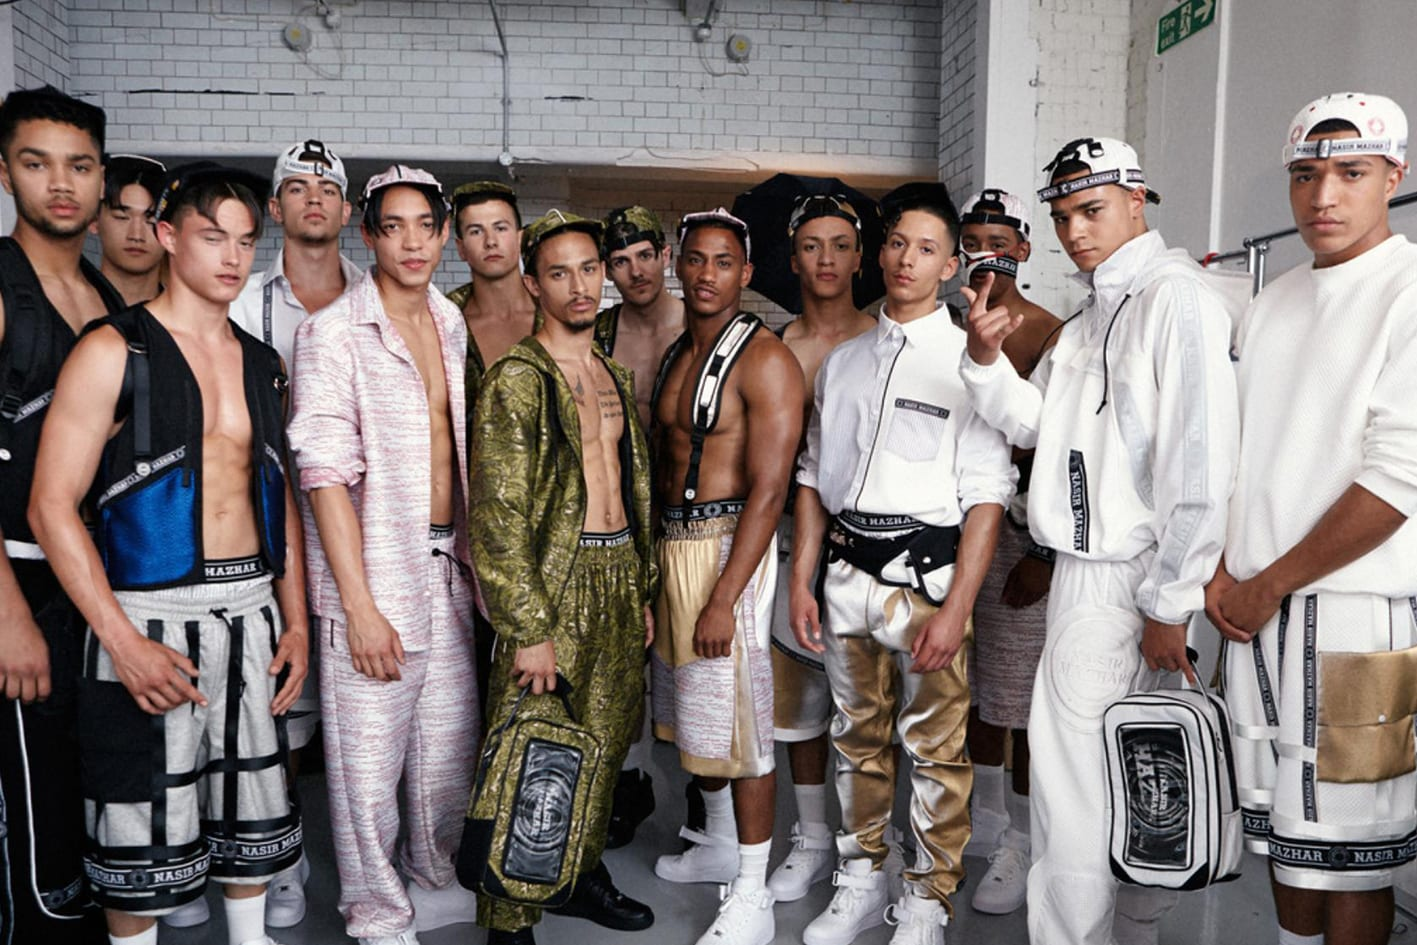 nasir-mazhar-london-fashion-menswear-sportswear-antidote